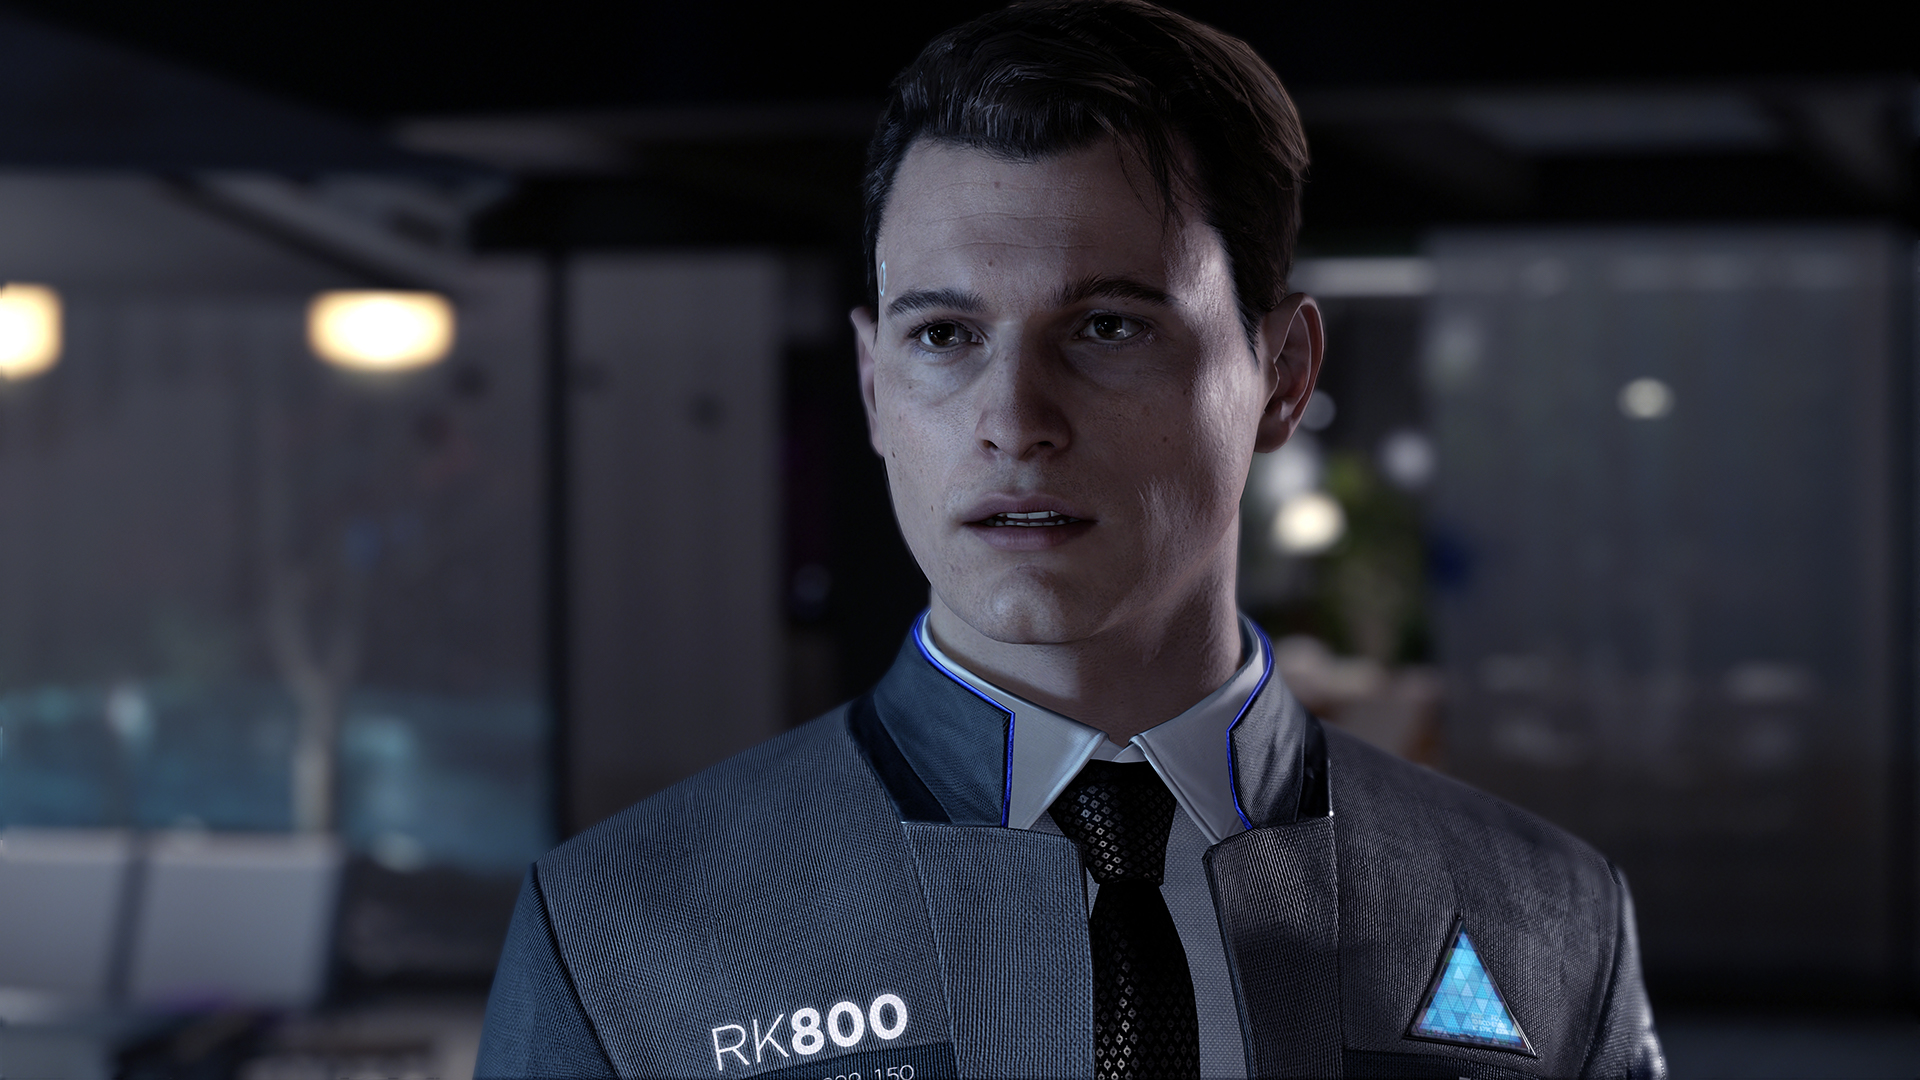 Bryan Dechart as Connor (Detroit: Become Human)